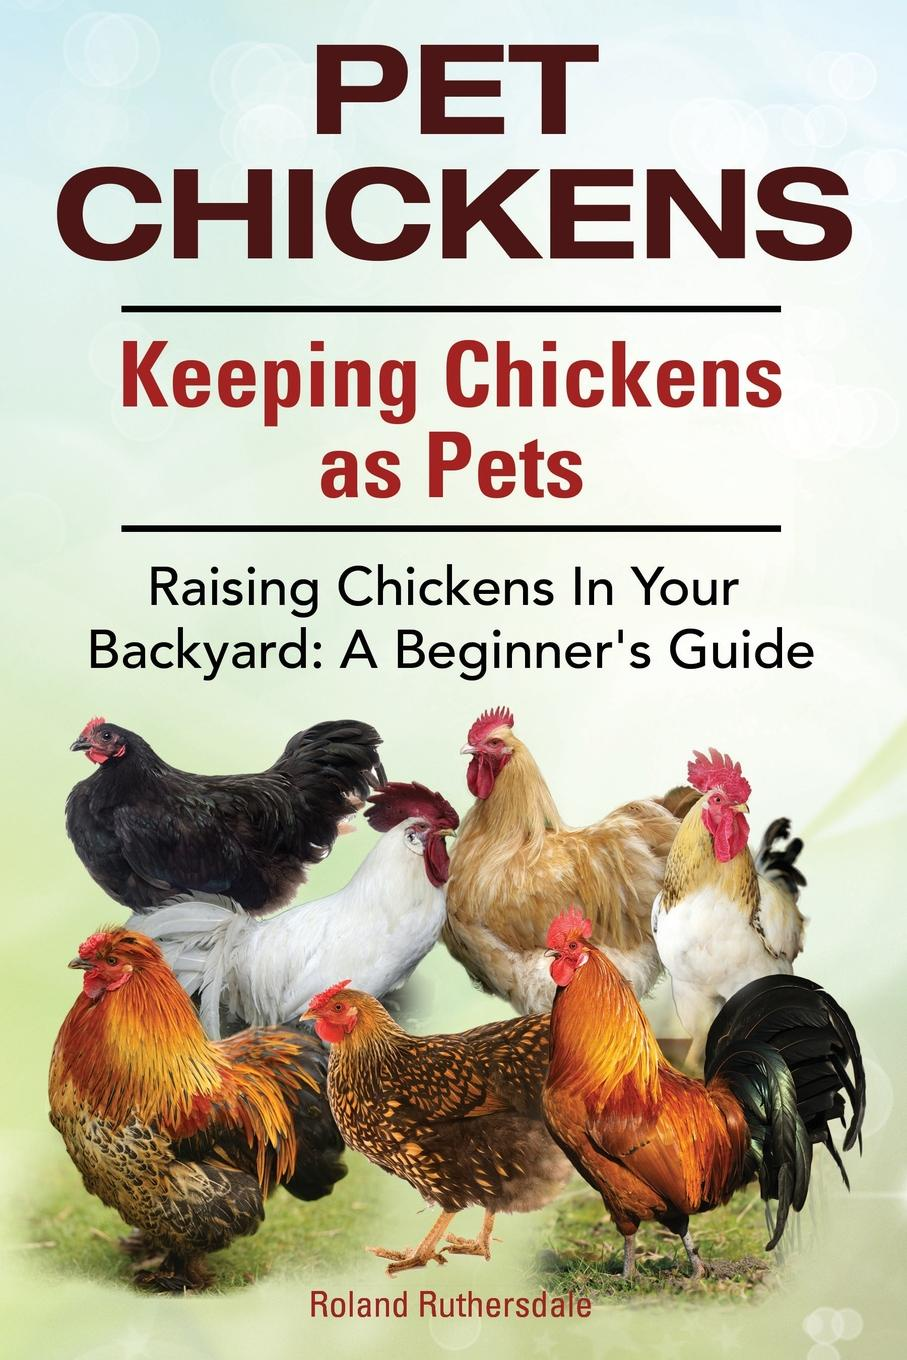 Фото - Roland Ruthersdale Pet Chickens. Keeping Chickens as Pets. Raising Chickens In Your Backyard. A Beginners Guide mark burrows so you want to start keeping chickens